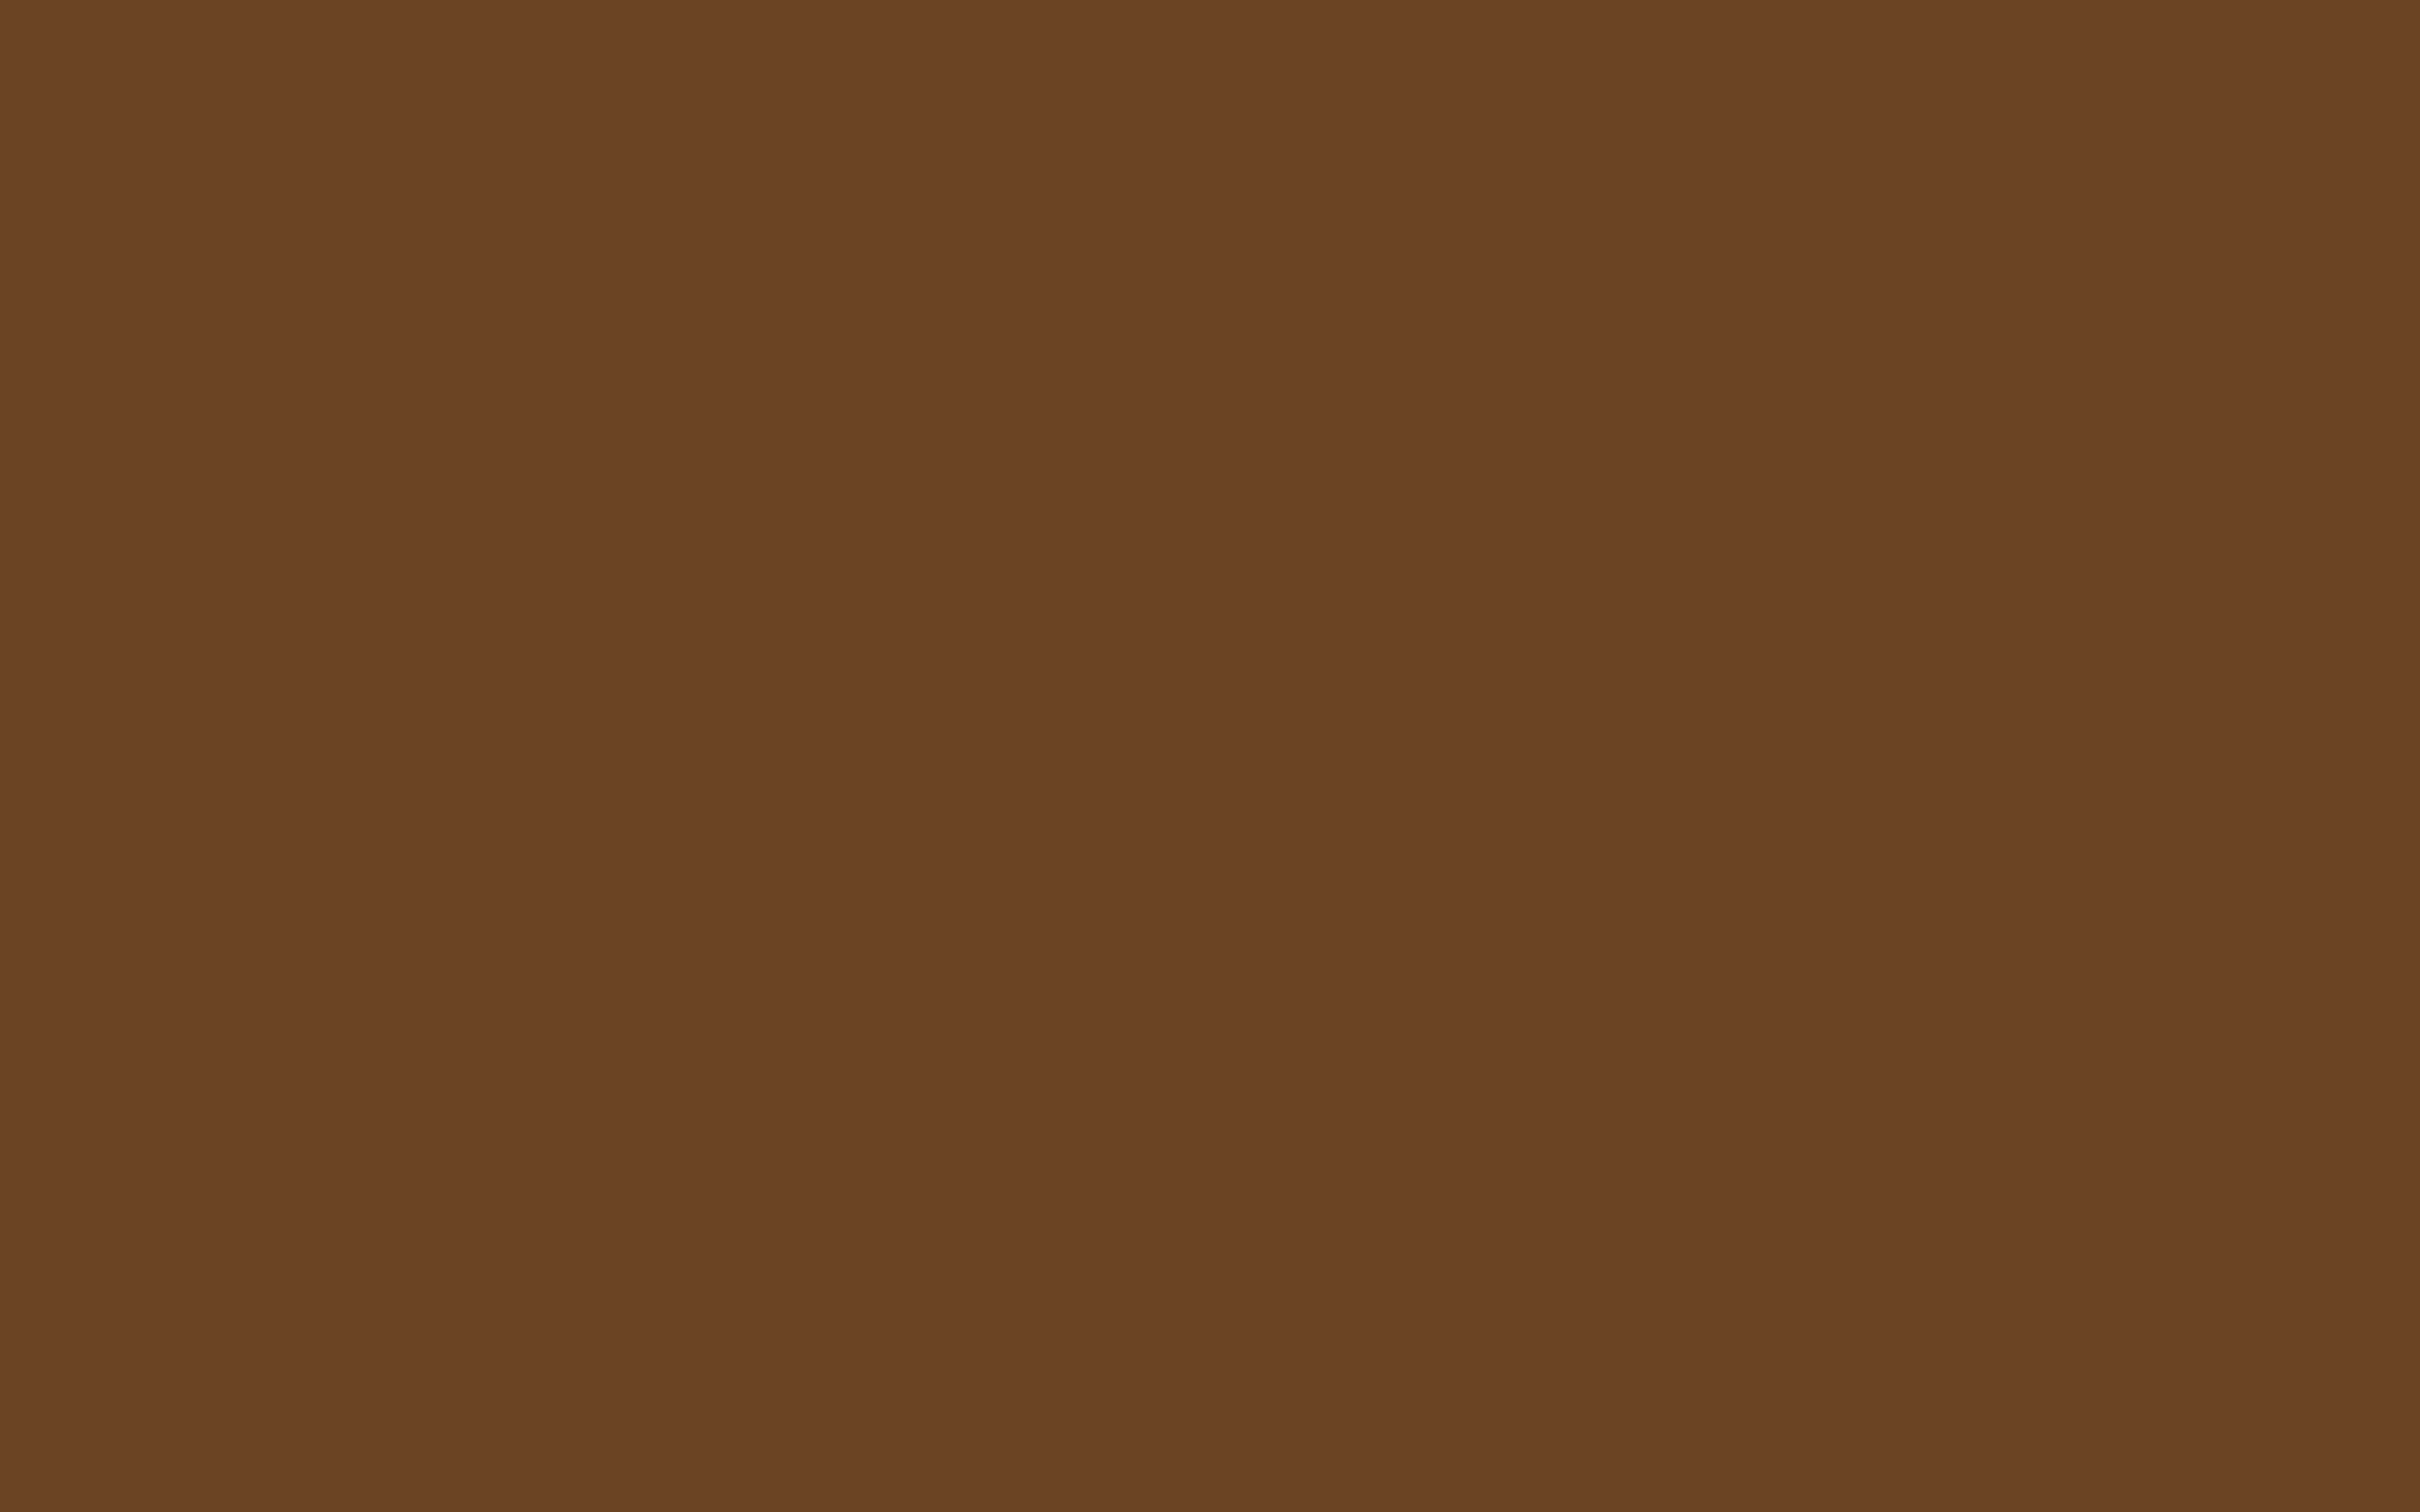 2880x1800 Brown-nose Solid Color Background